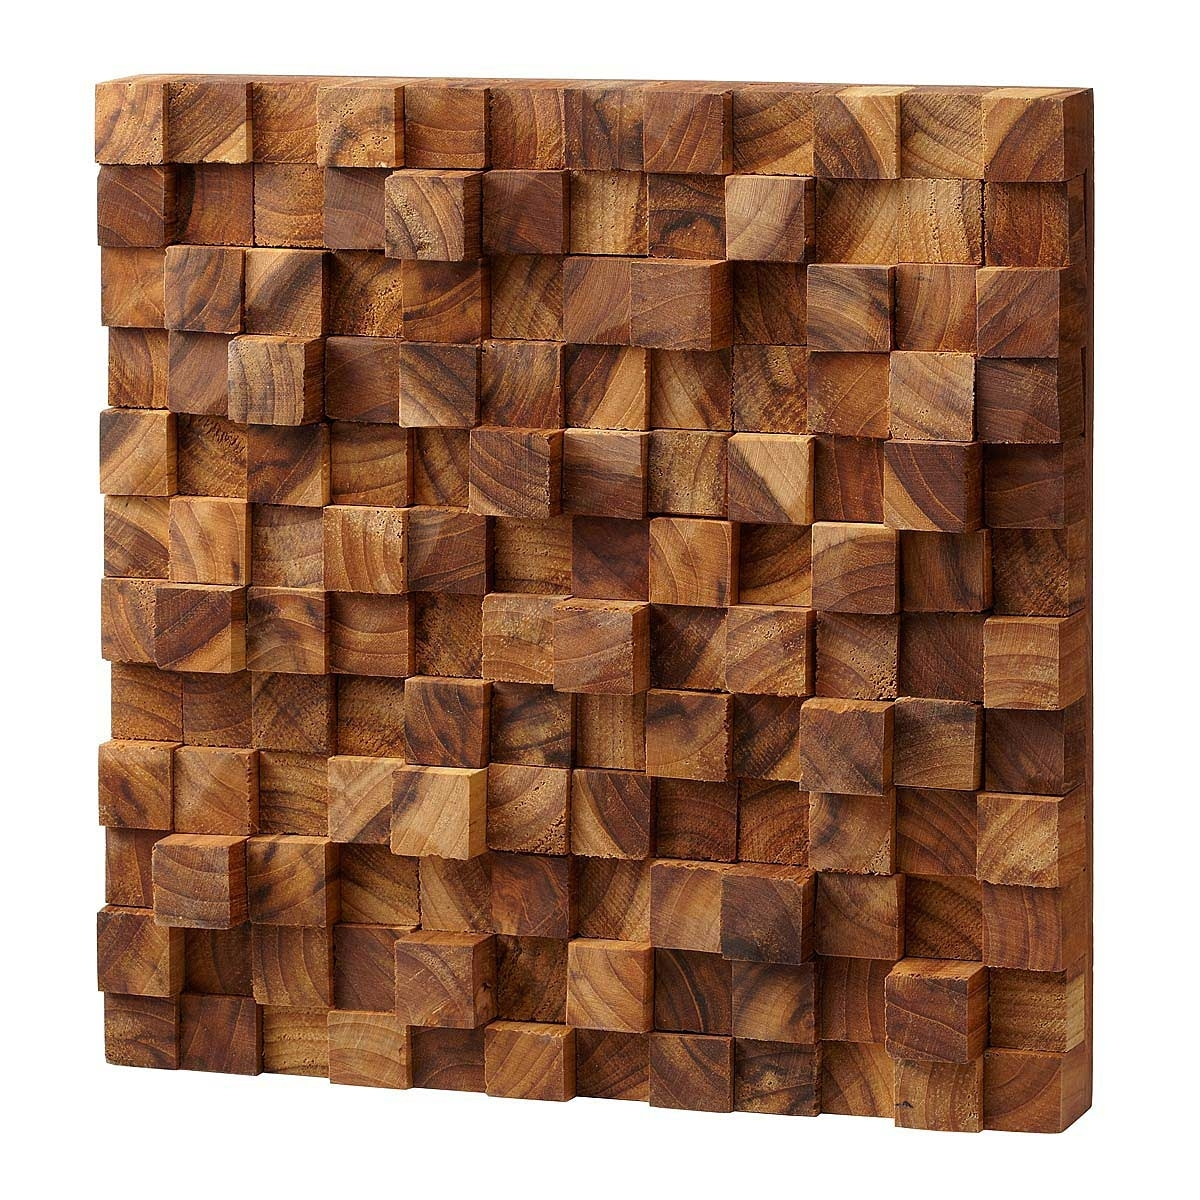 Square Takara Wall Art | Teak Wood, 3D Art | Uncommongoods Pertaining To Best And Newest Wooden Wall Art (View 8 of 15)